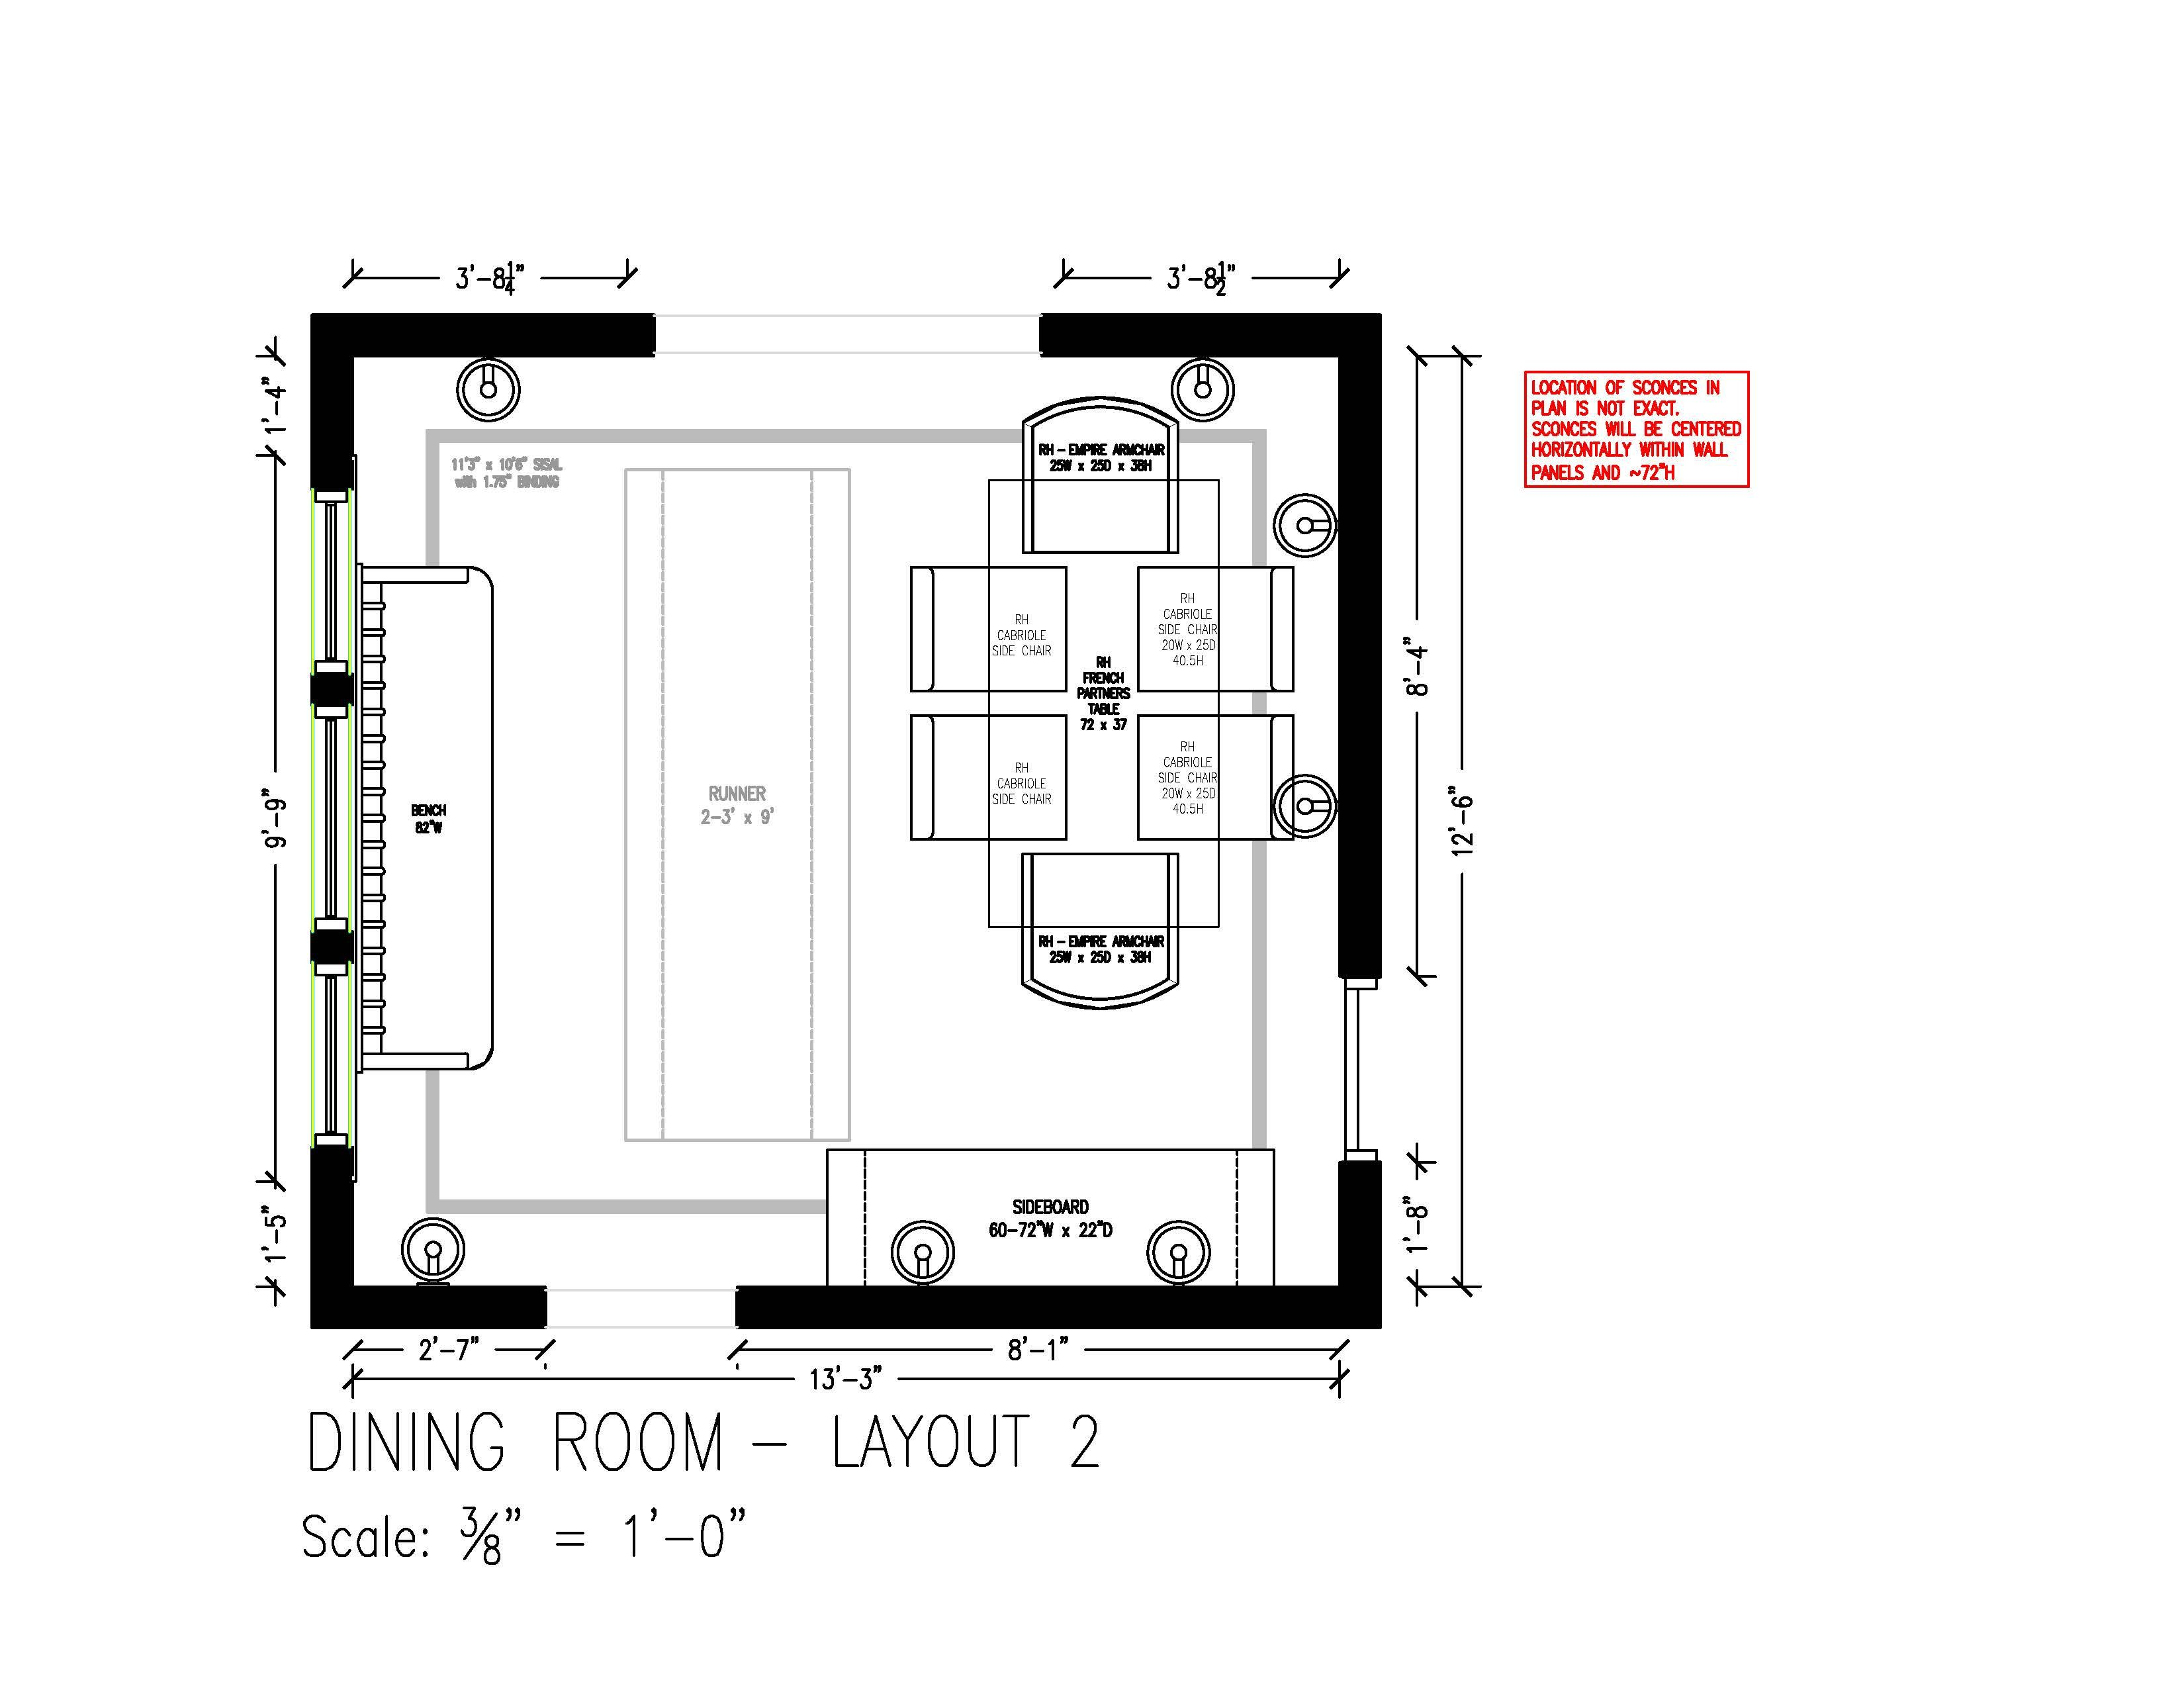 Dining Room Furniture Layout 2 Removed Console & Display Cabinet Beauteous Dining Room Layout Design Decoration